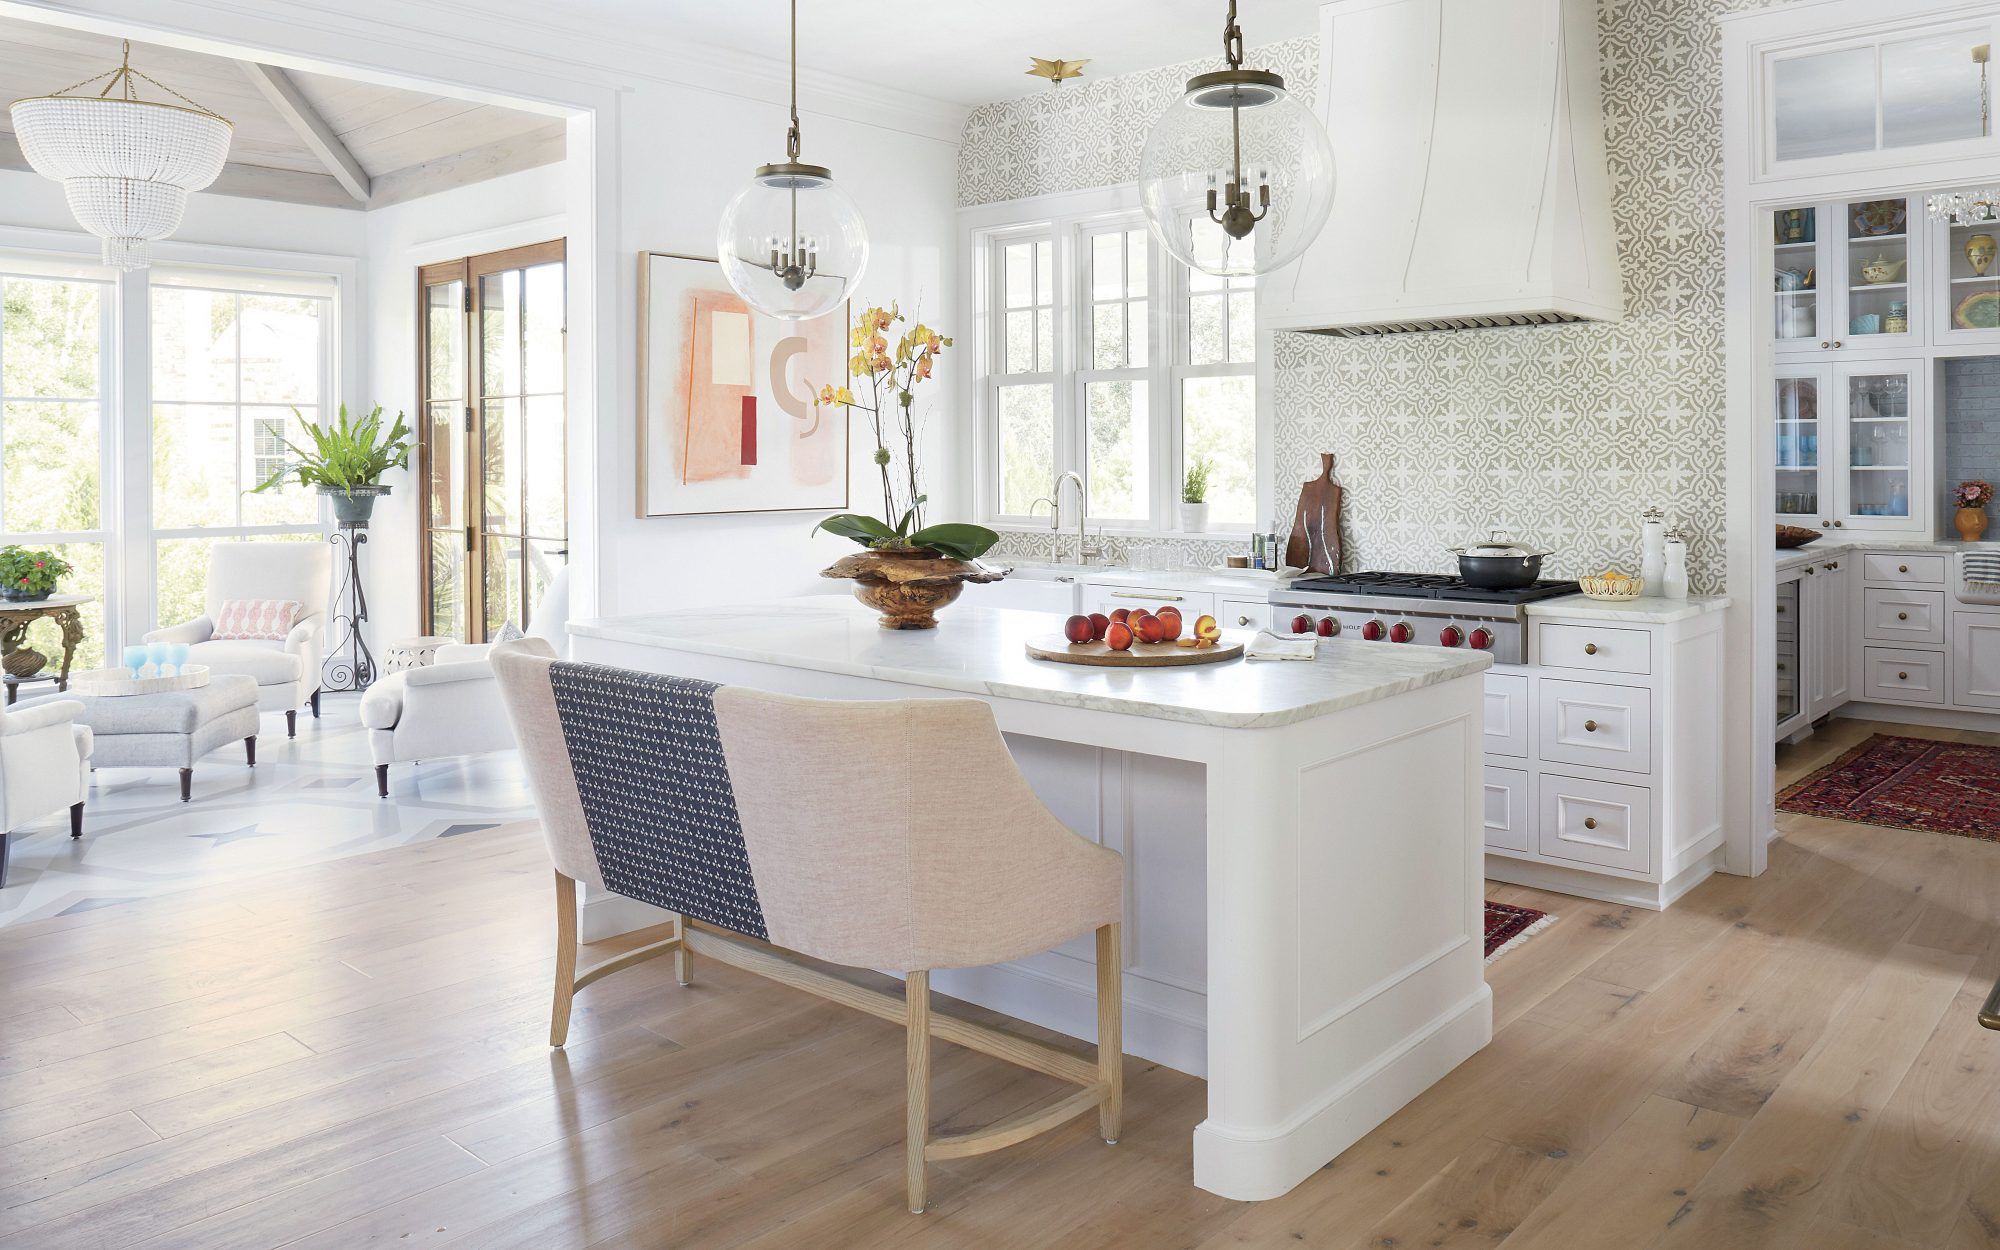 Jenny Keenan Designed Kitchen for Her Parents in Mount Pleasant, SC